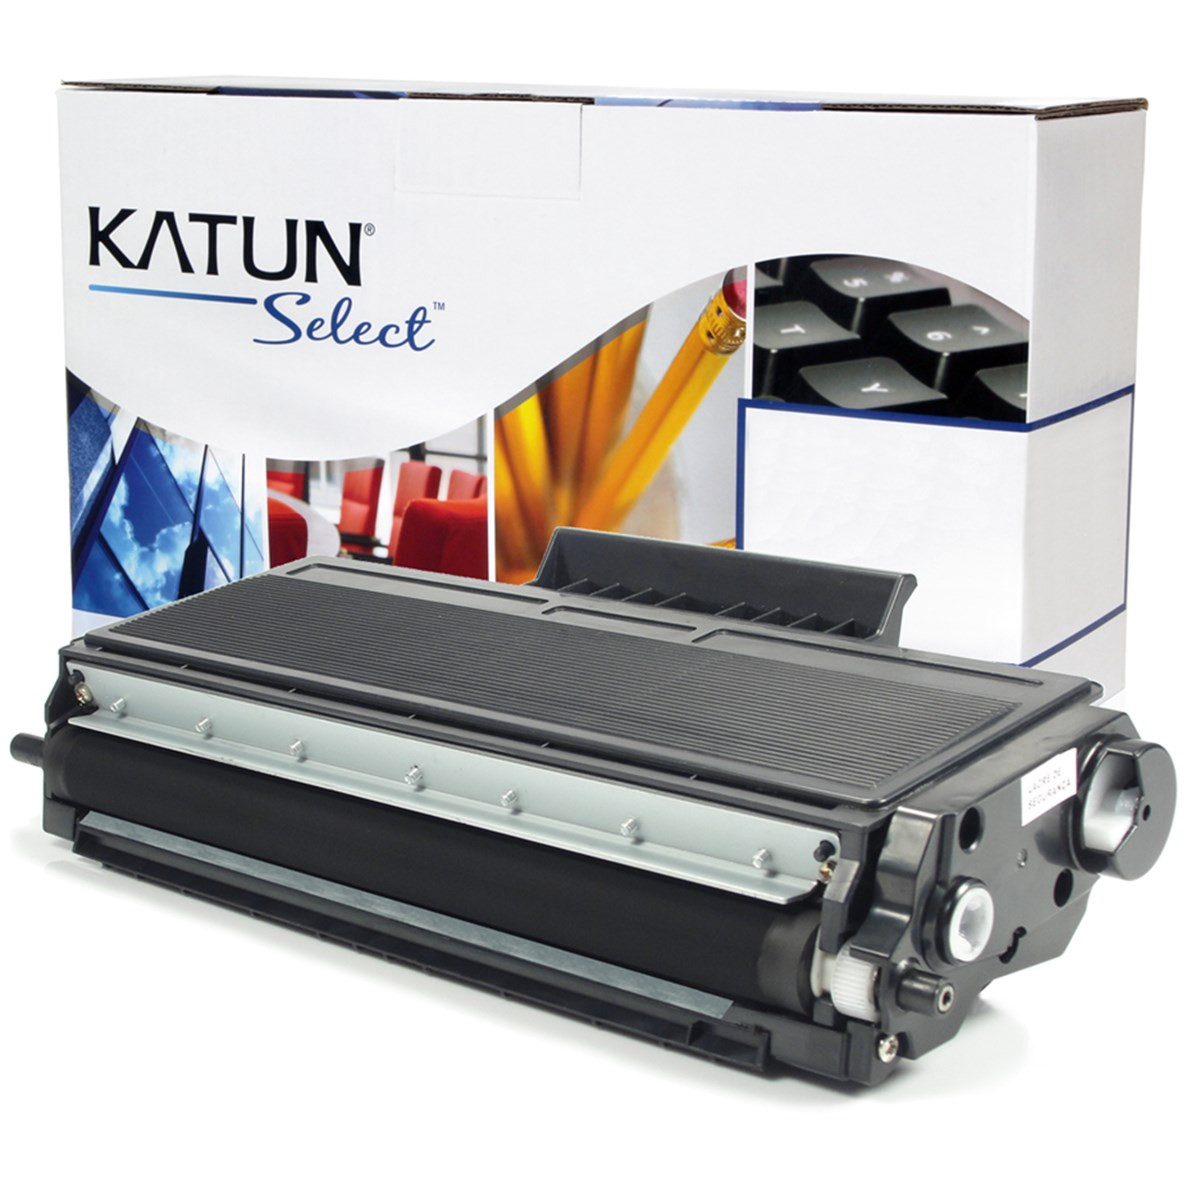 Toner Brother TN650 | DCP8080DN DCP8085N HL5350DN HL5370DWT MFC8480DN | Katun Select 8k